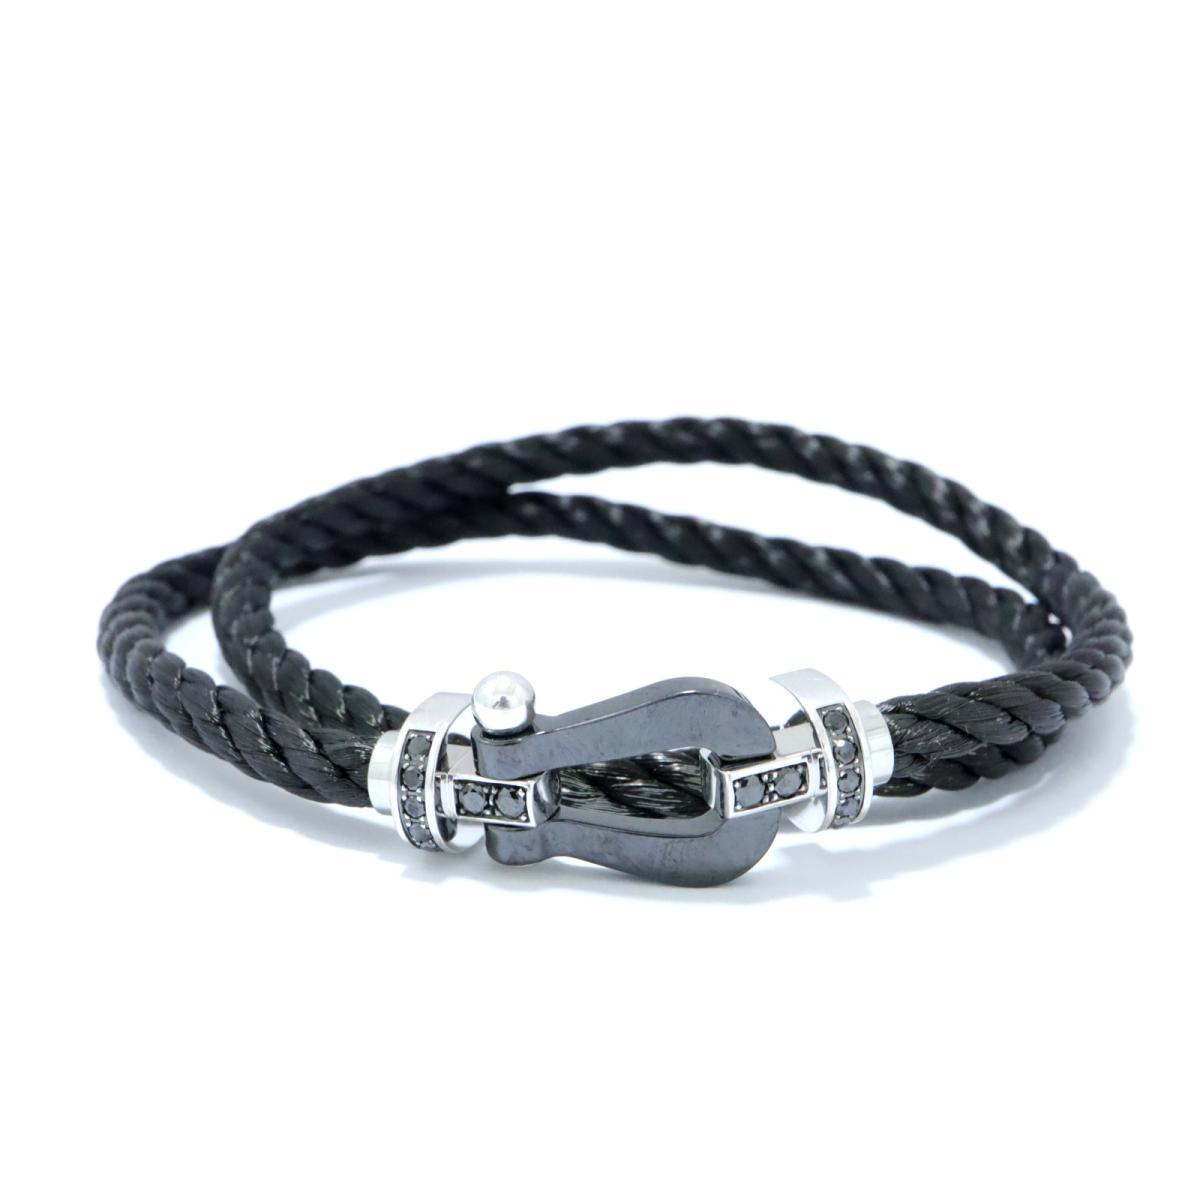 Fred Force 10 Black Diamond Bracelet